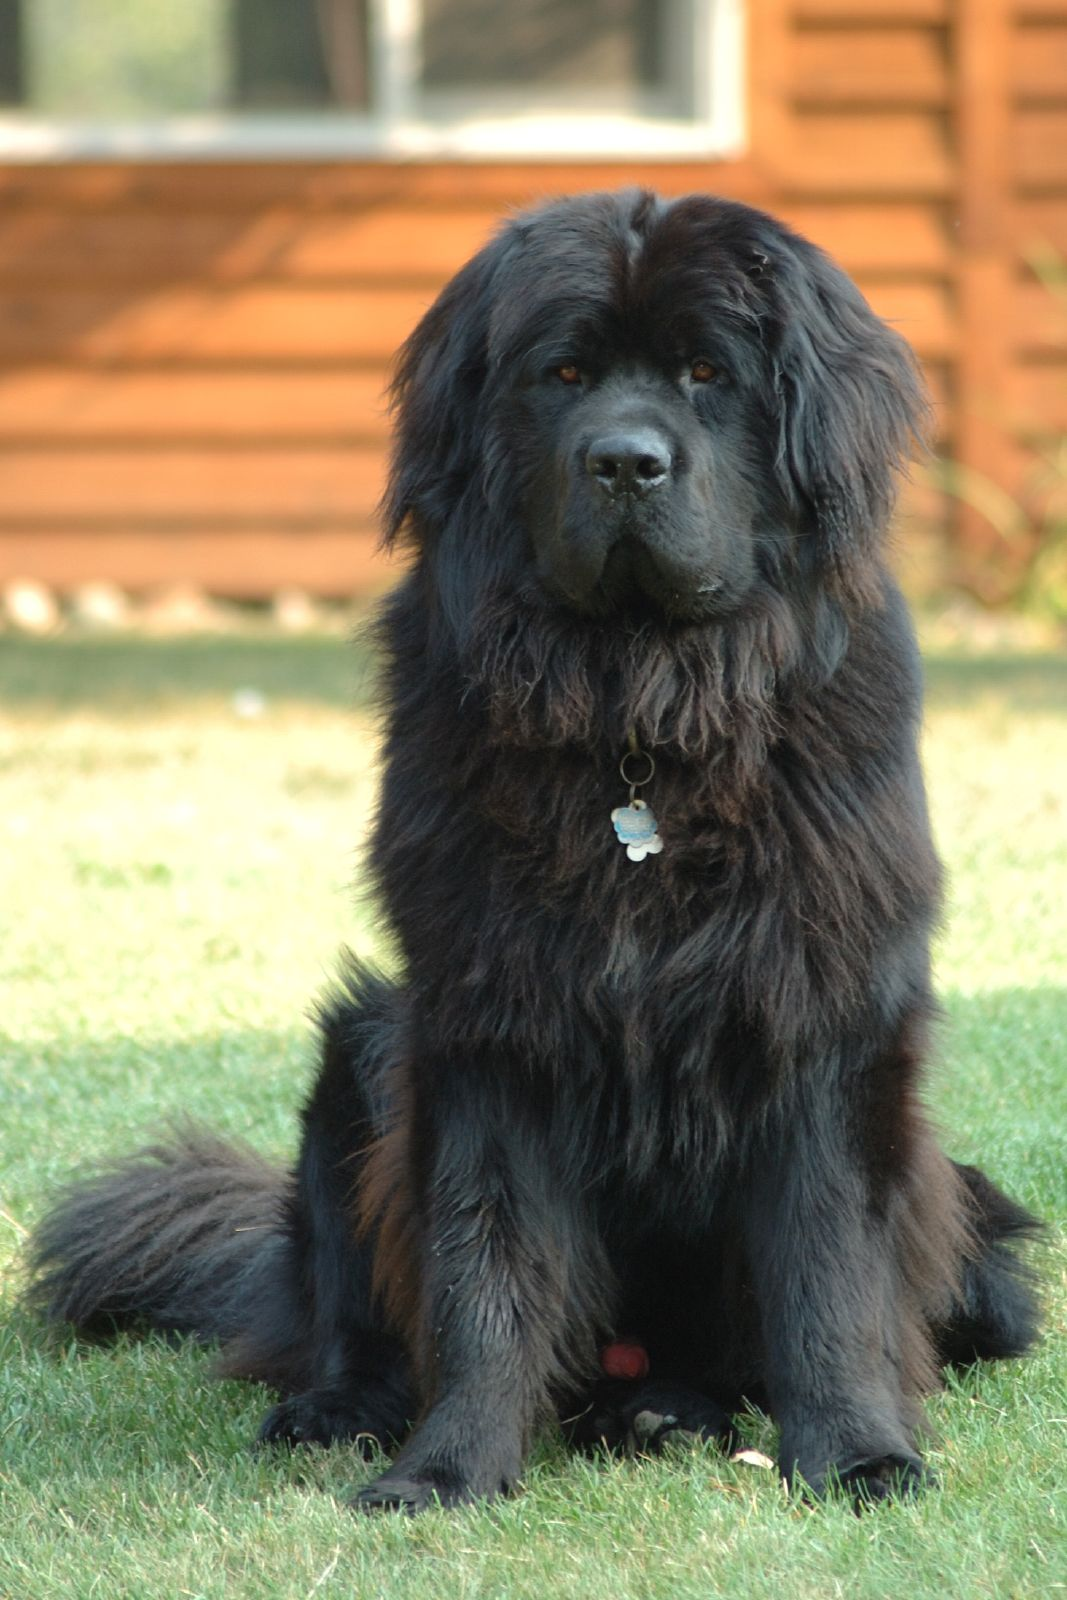 http://upload.wikimedia.org/wikipedia/commons/a/a5/Newfoundland_dog_Smoky.jpg